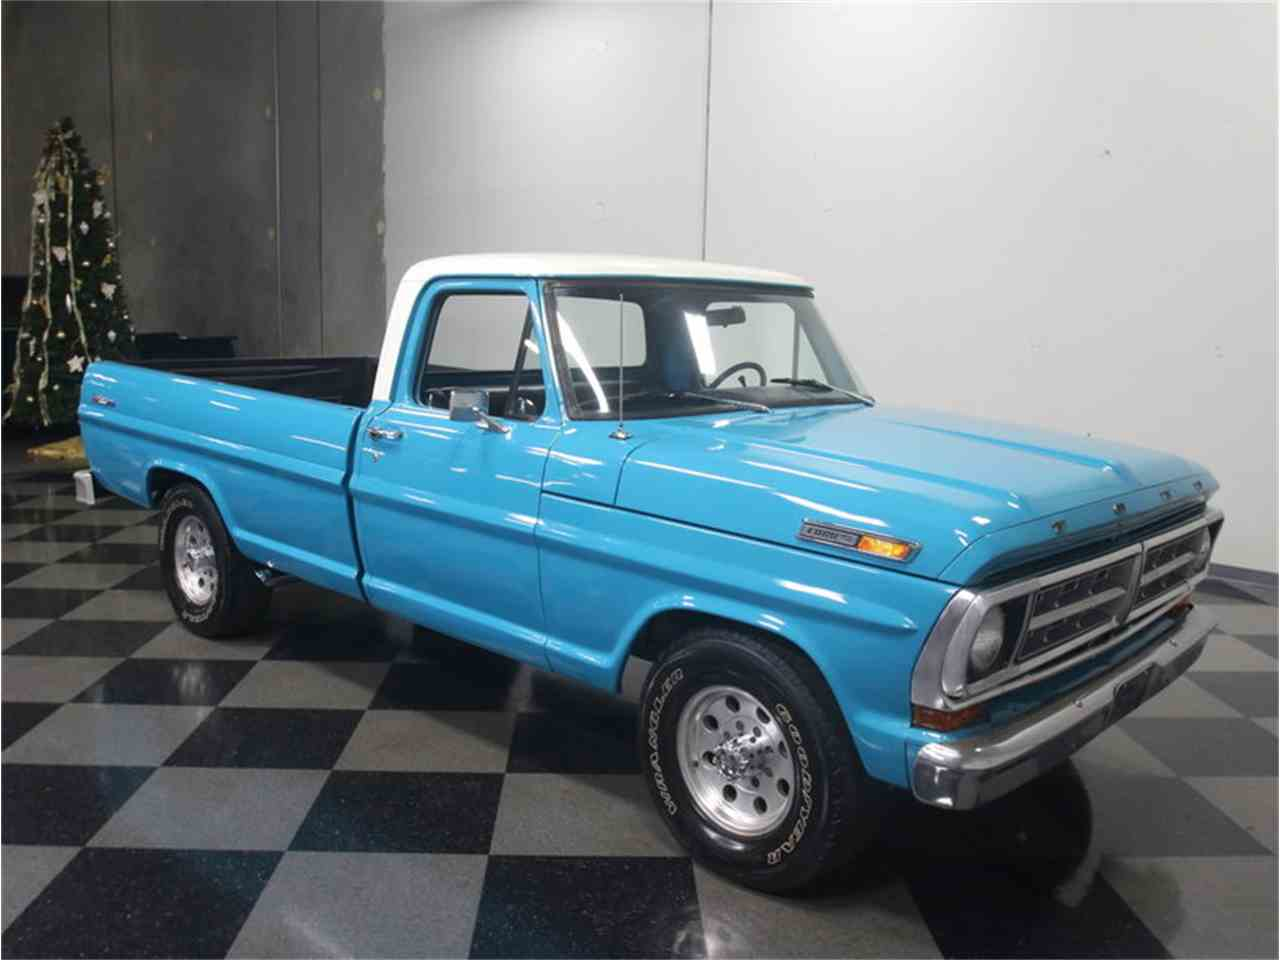 Large Picture of '72 Ford F-250 Ranger located in Lithia Springs Georgia Offered by Streetside Classics - Atlanta - MO82